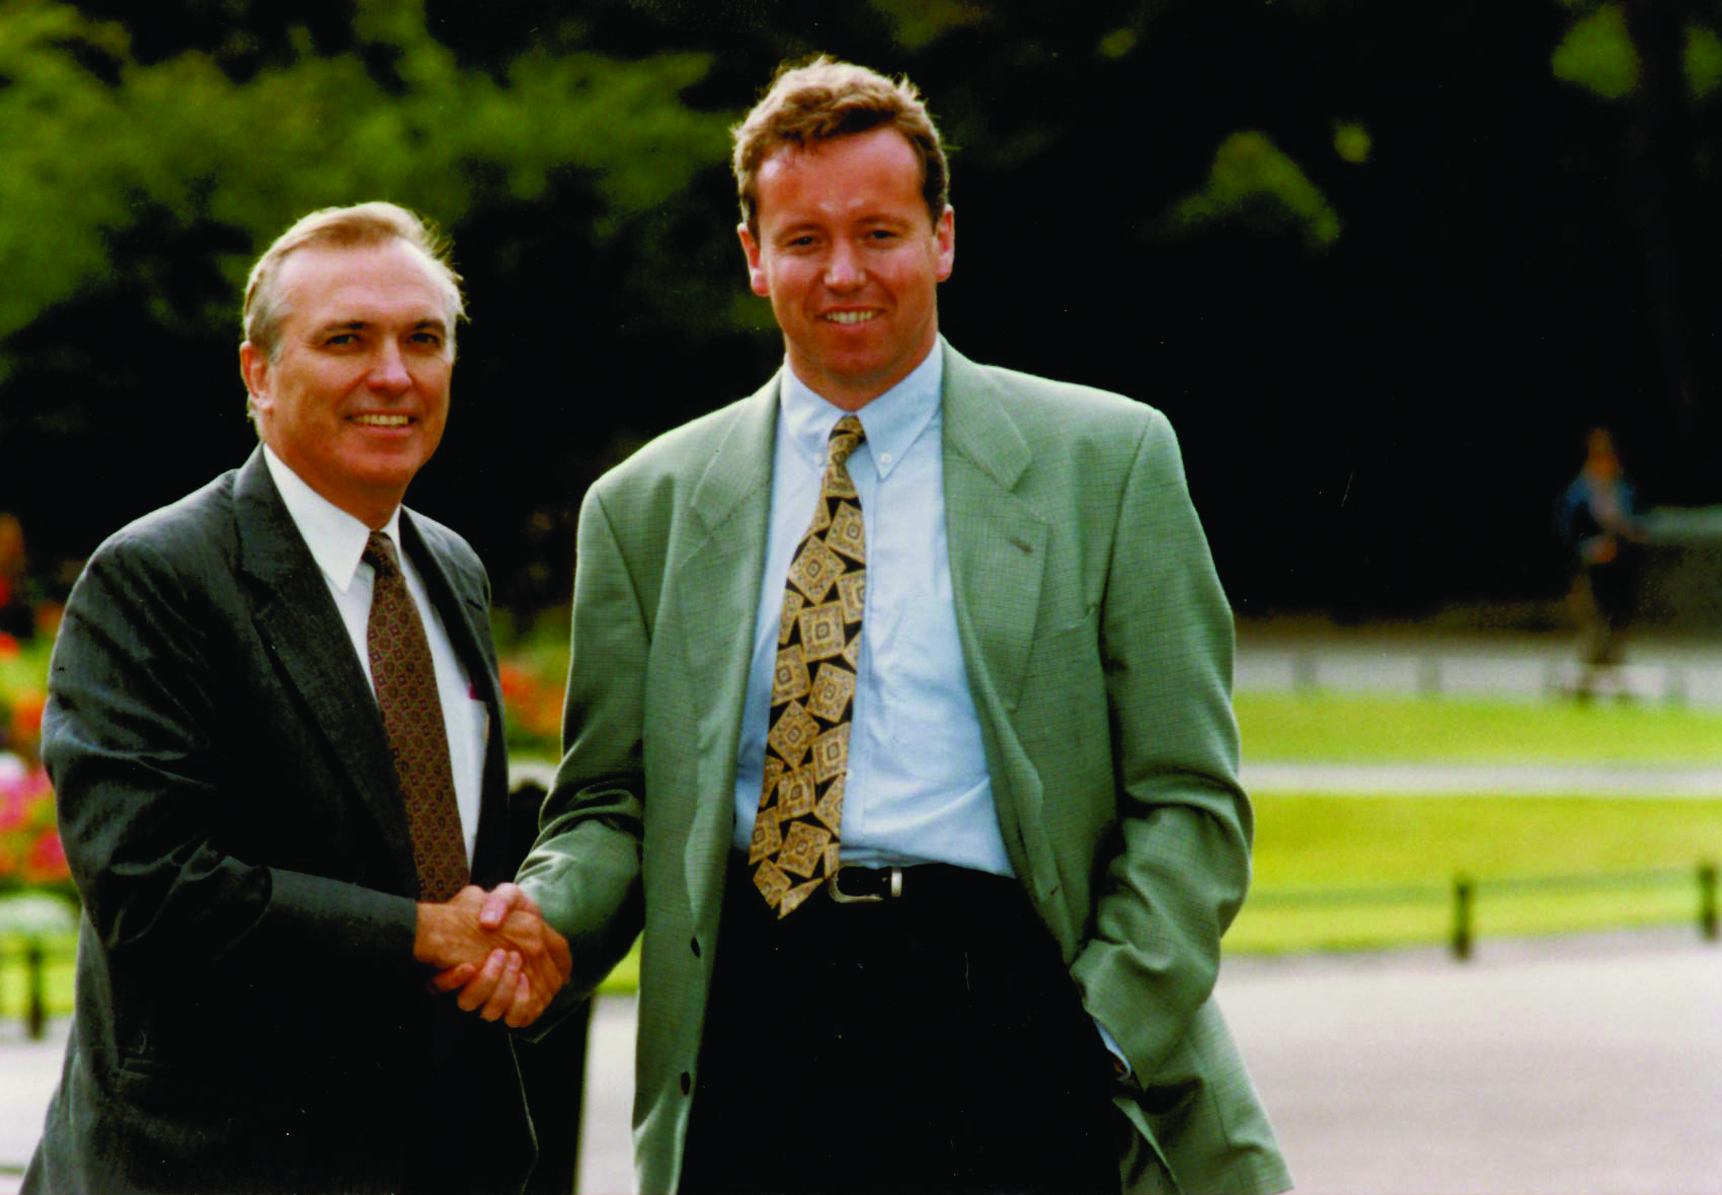 Dublin 1990: Sealing the joint venture with FleishmanHillard's John Graham.